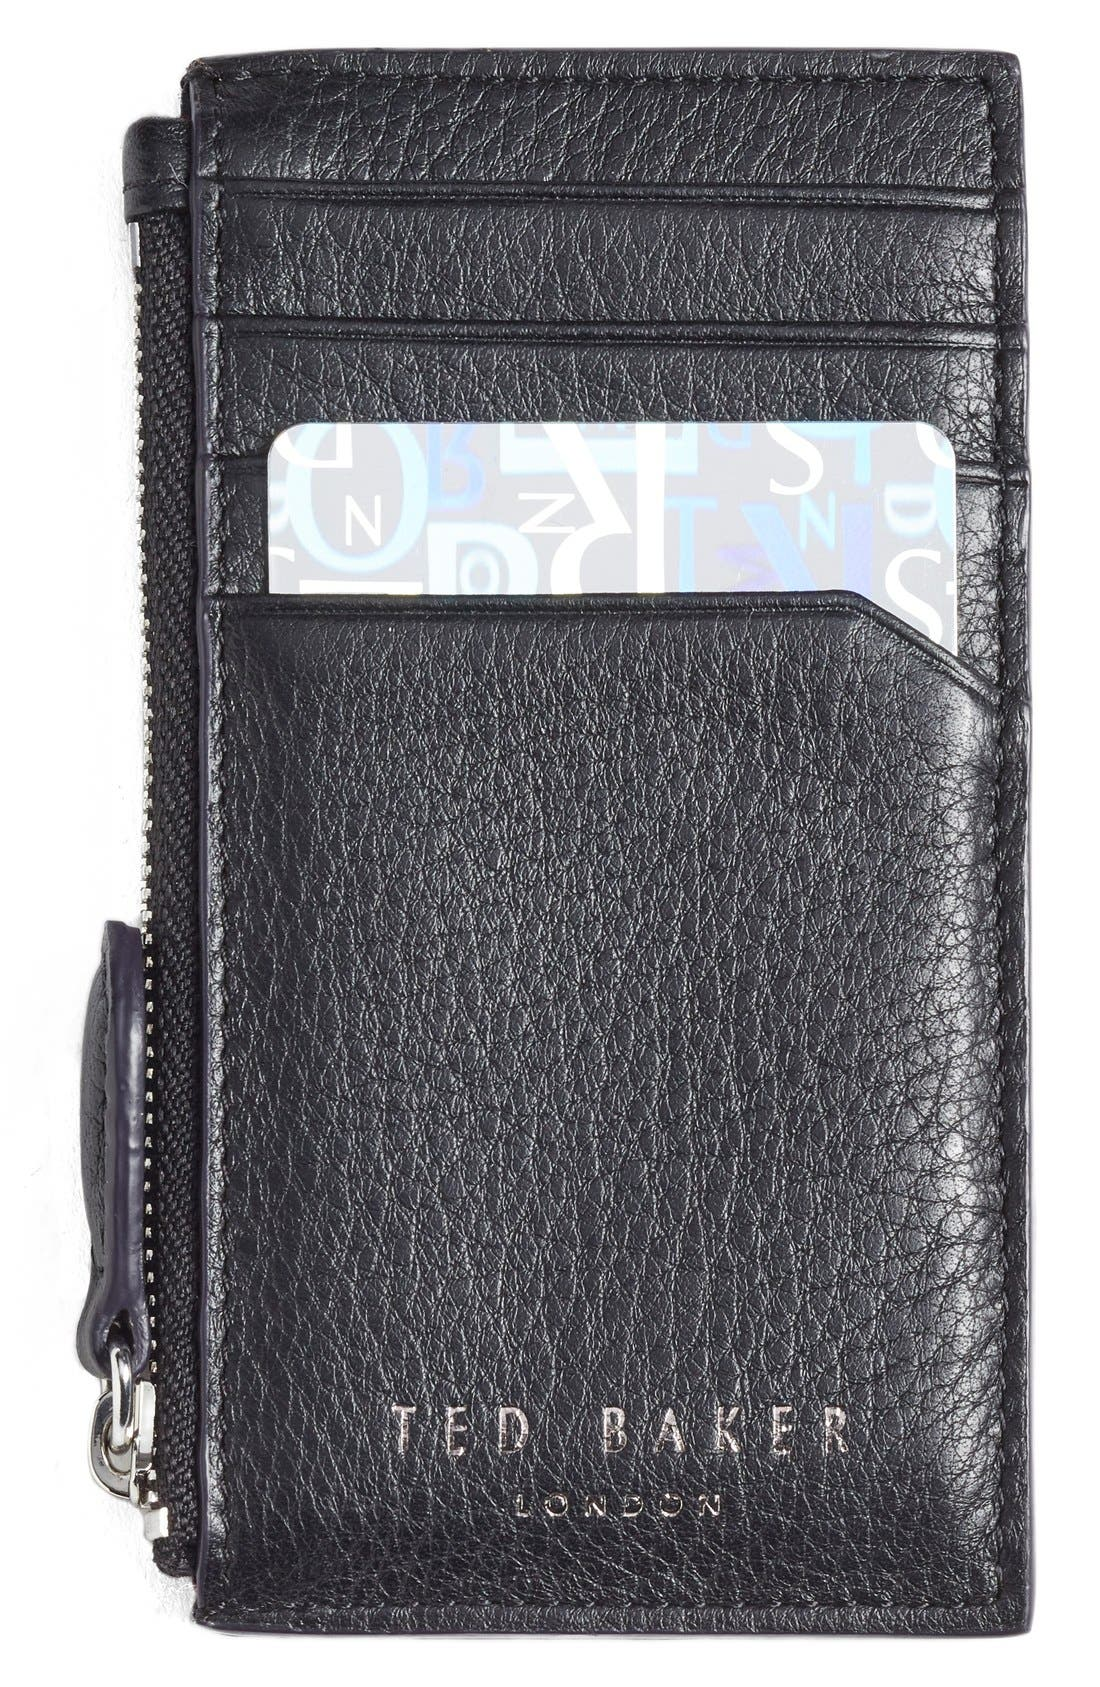 Alternate Image 1 Selected - Ted Baker London 'Longzip' Card & Coin Case